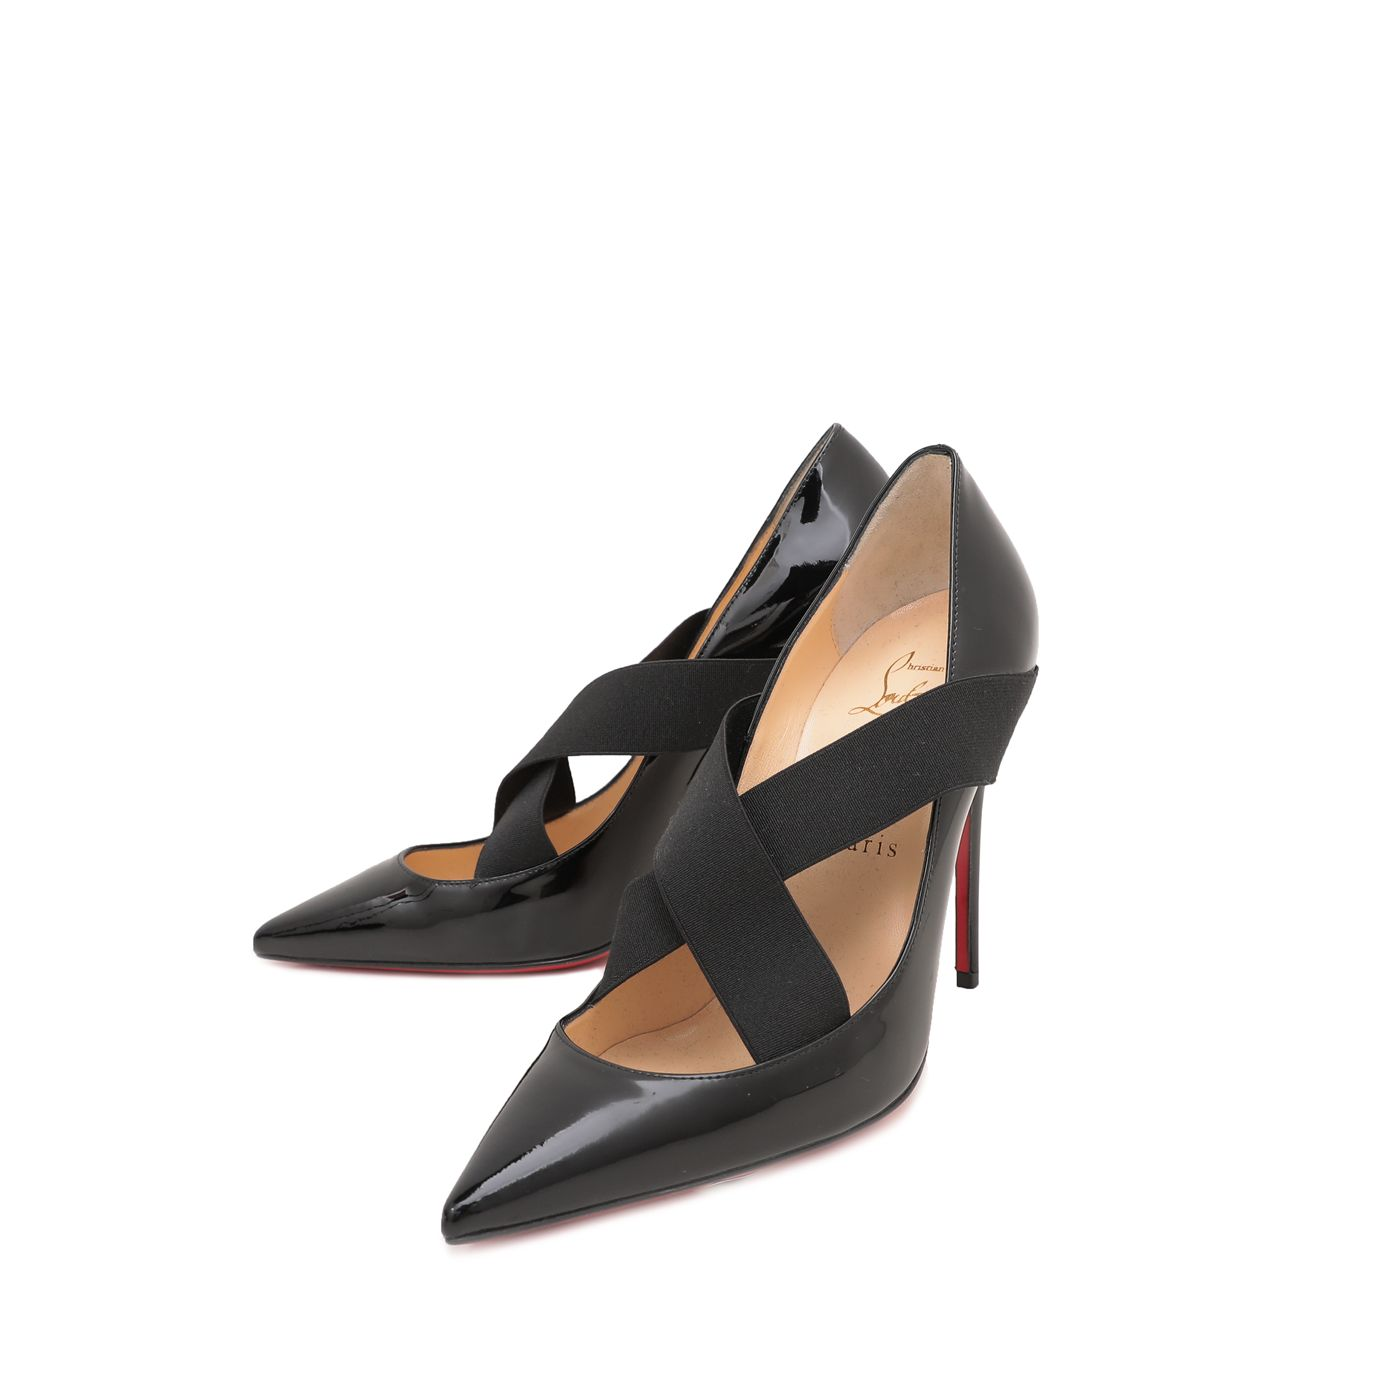 Christian Louboutin Black Sharpstagram Pumps 100mm 37